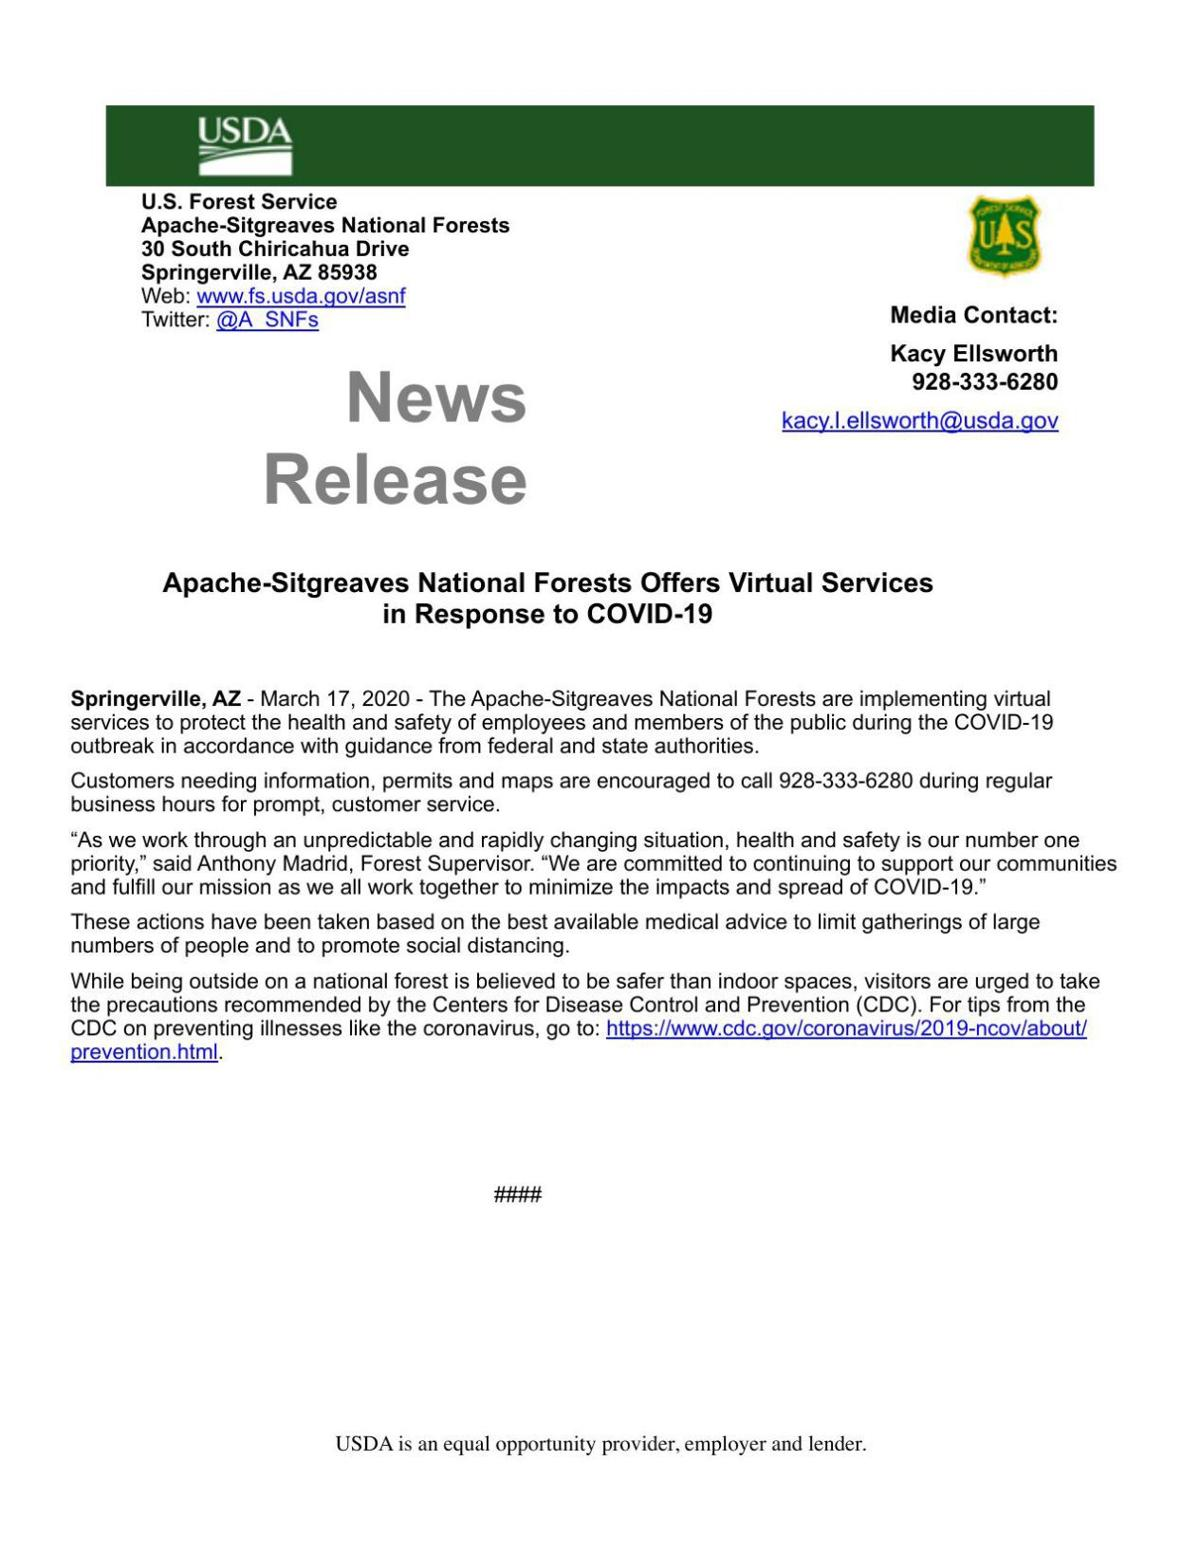 Forest Service implements virtual service